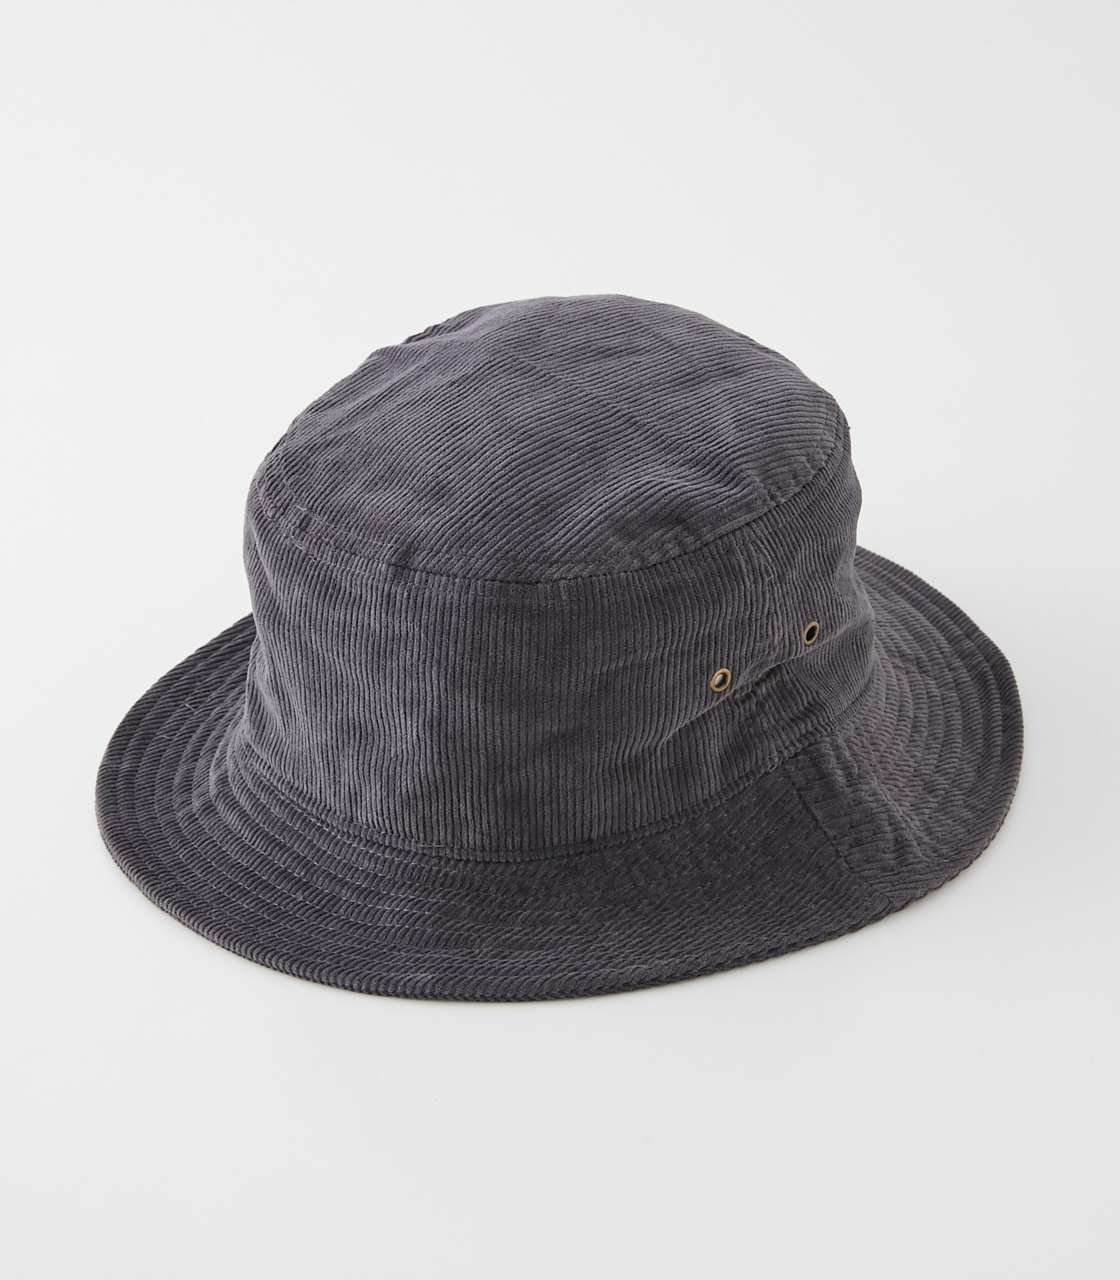 NEWHATTAN×AZUL CORDUROY HAT/NEWHATTAN×AZULコーデュロイハット 詳細画像 GRY 3